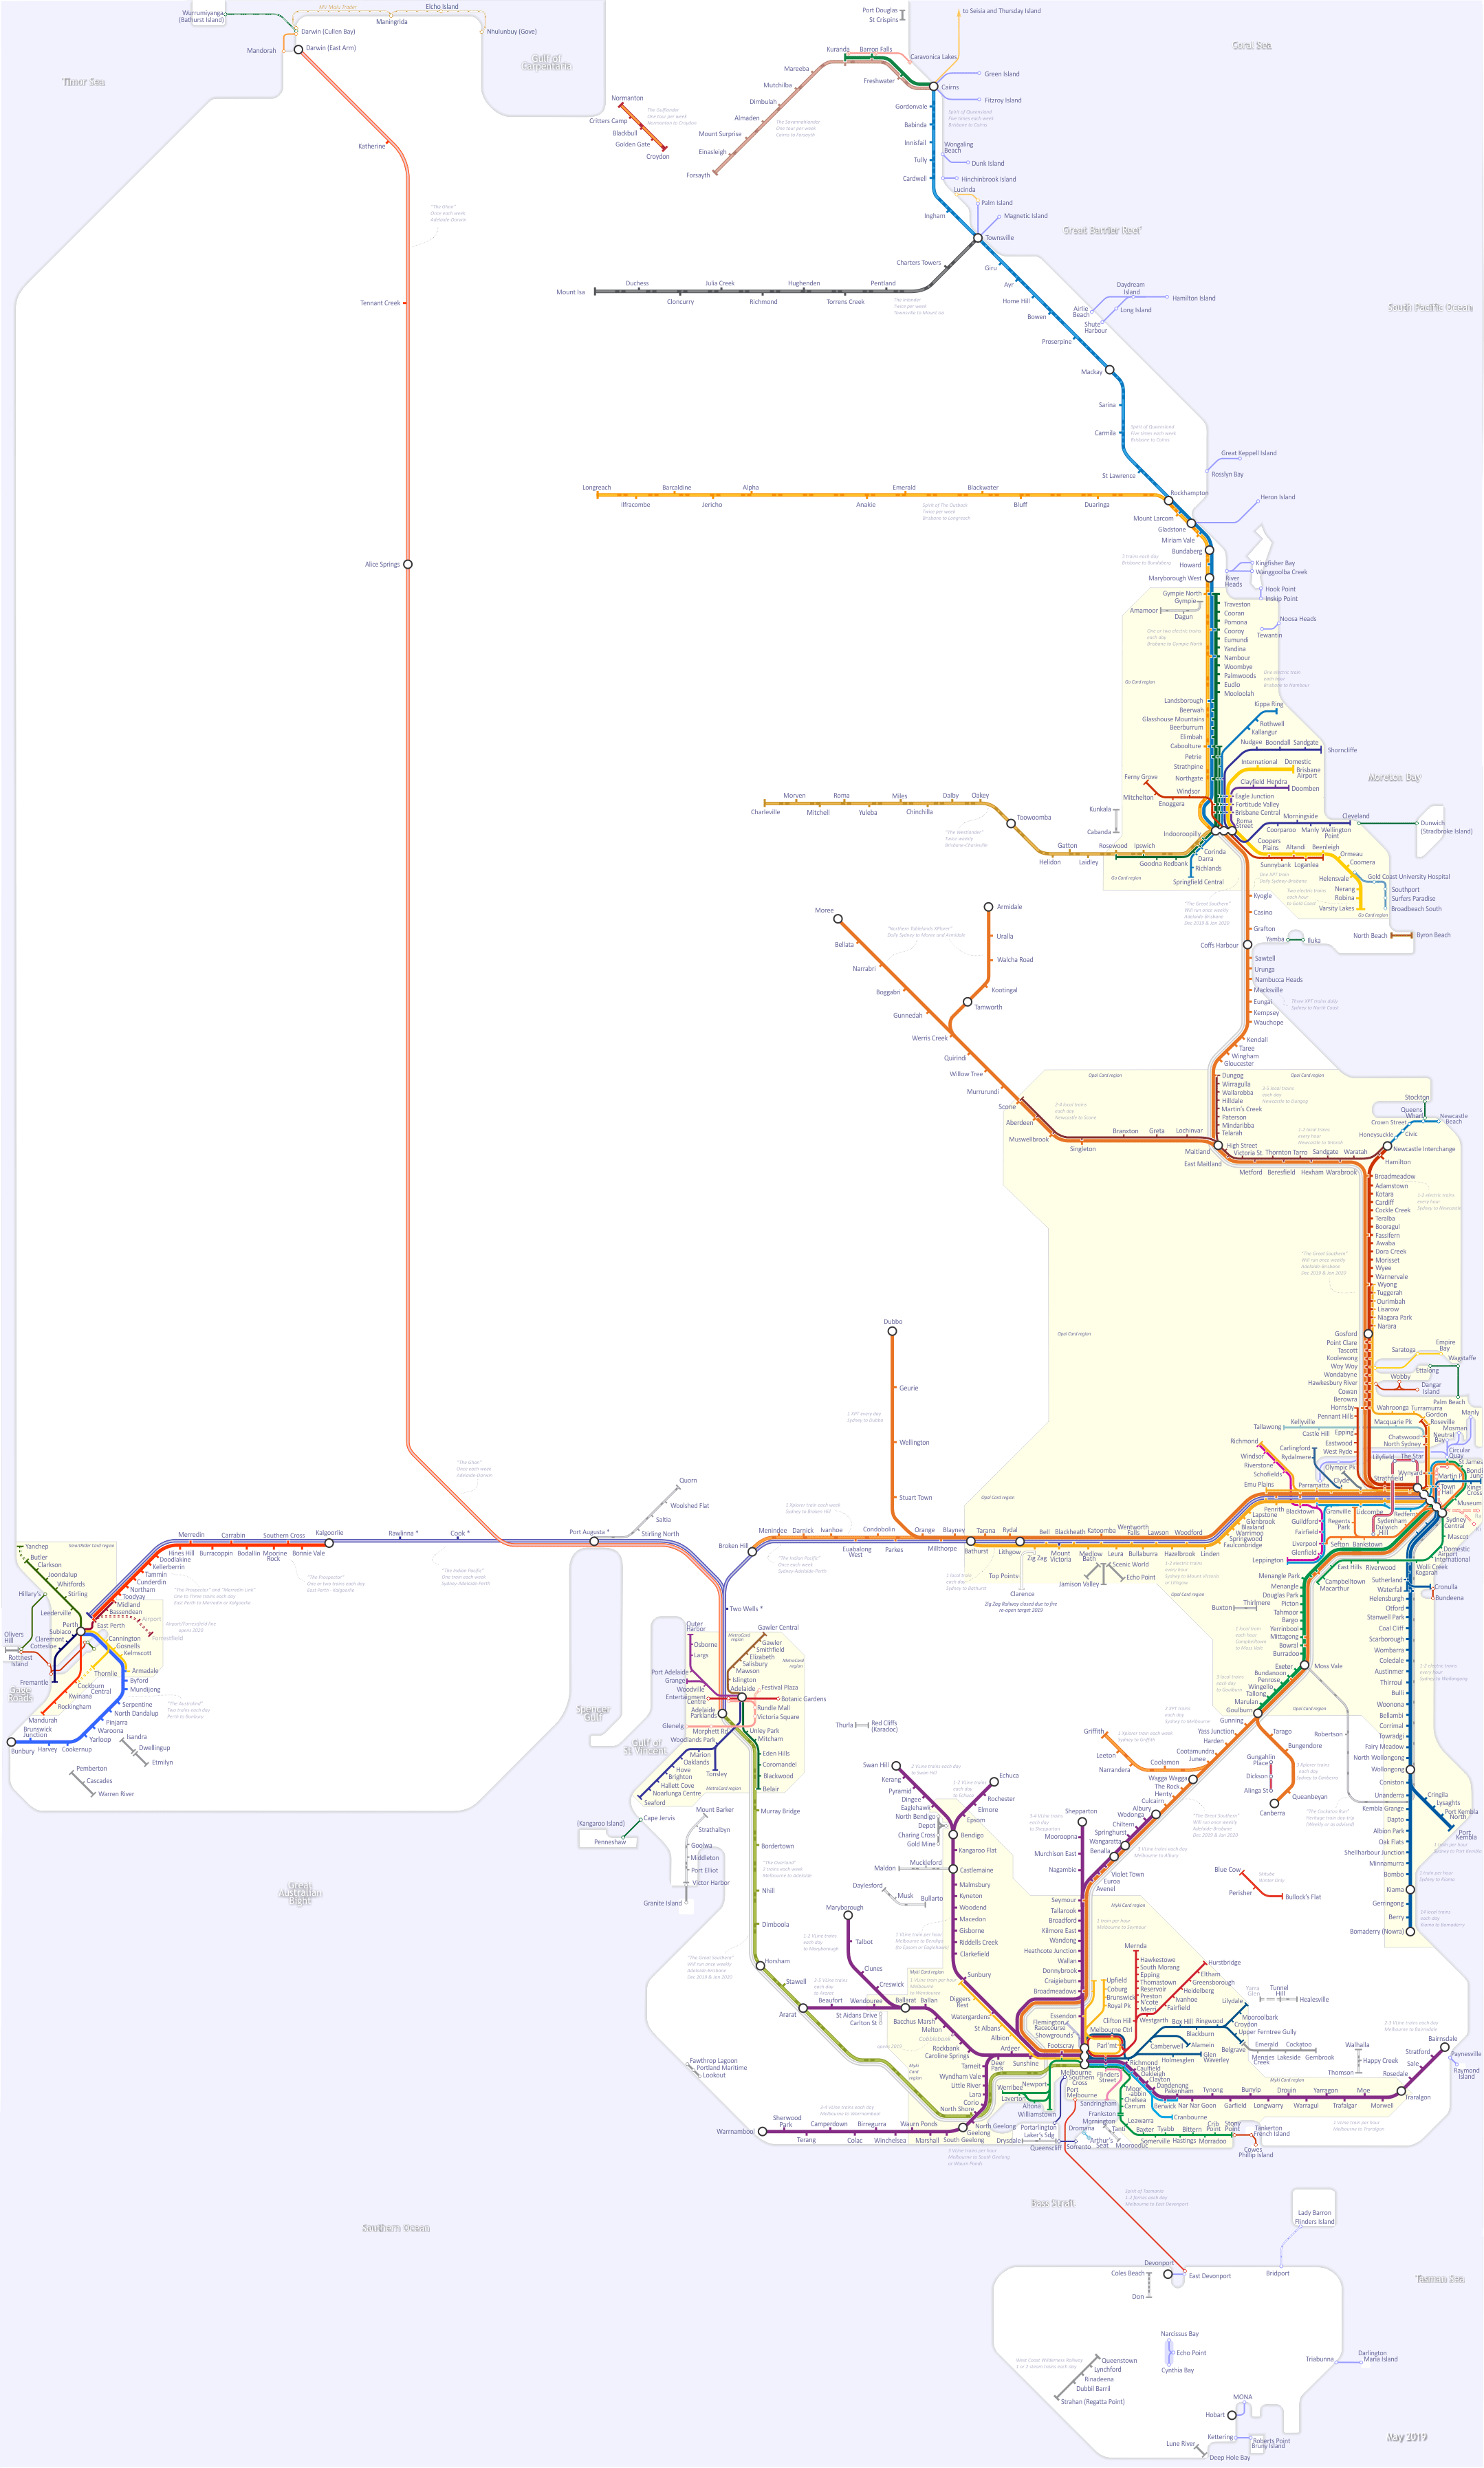 Go Via Trip Planner Train Map Of Eastern Australia And Northern New South Wales